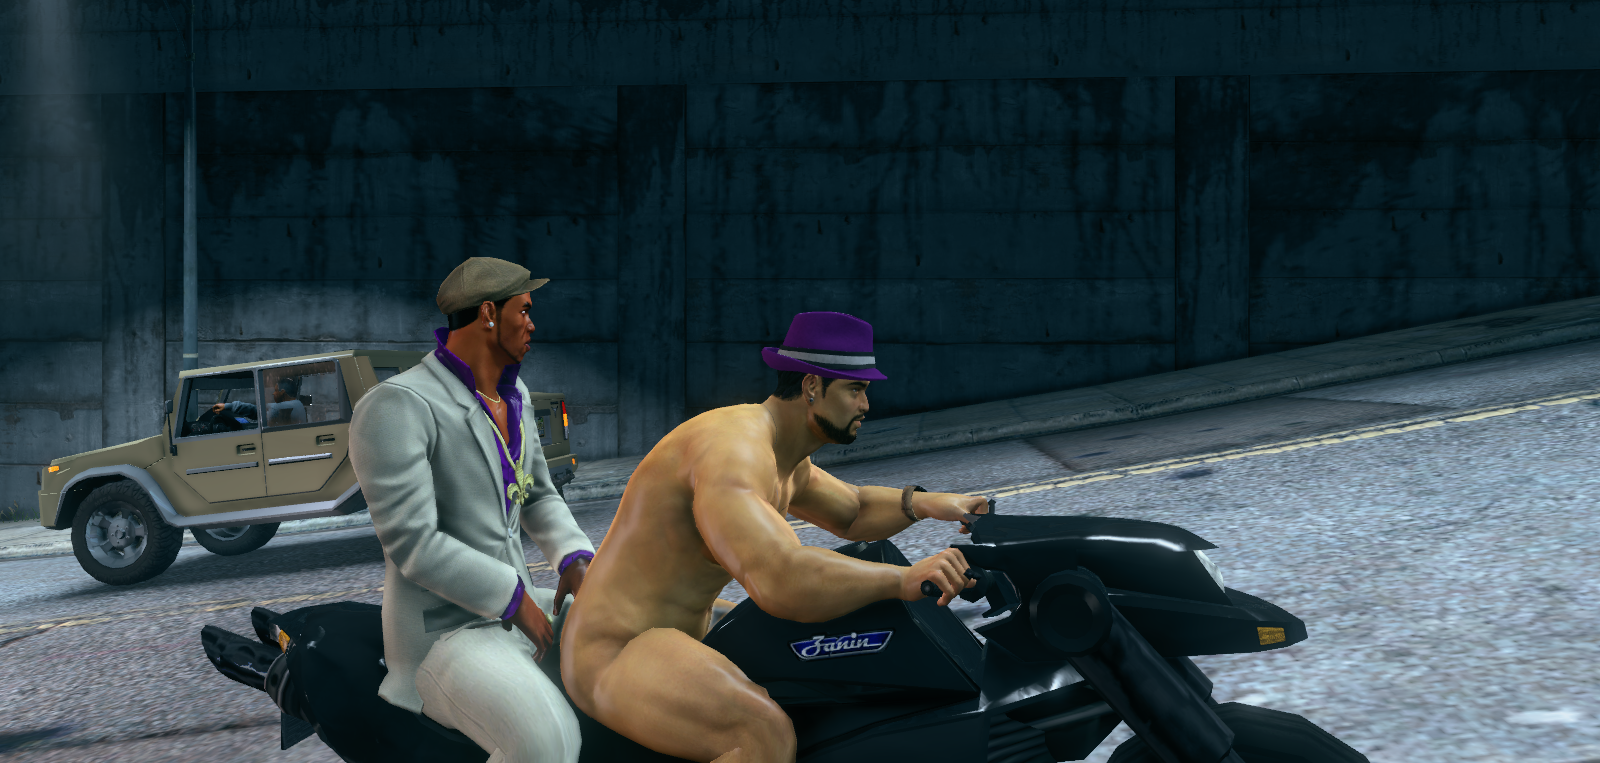 Download saints row 2 nude sexy images